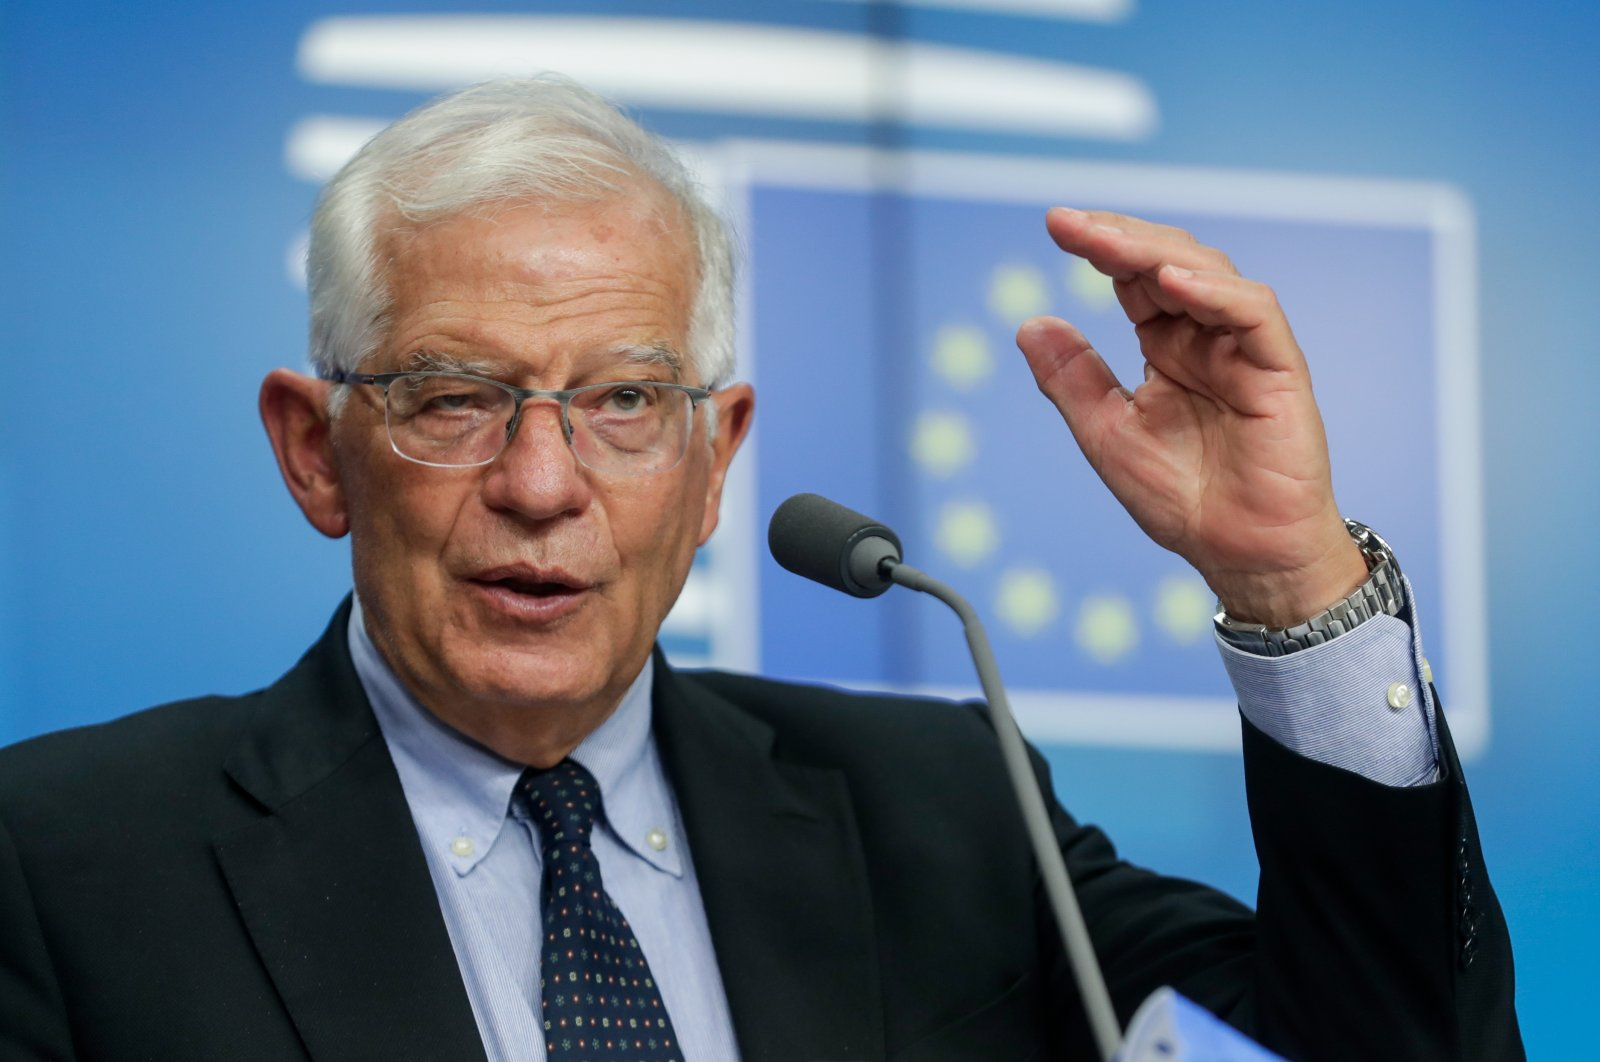 European Union foreign policy chief Josep Borrell gives a press conference at the end of a meeting of EU foreign ministers, at the European Council in Brussels, Belgium, July 12, 2021. (EPA File Photo)